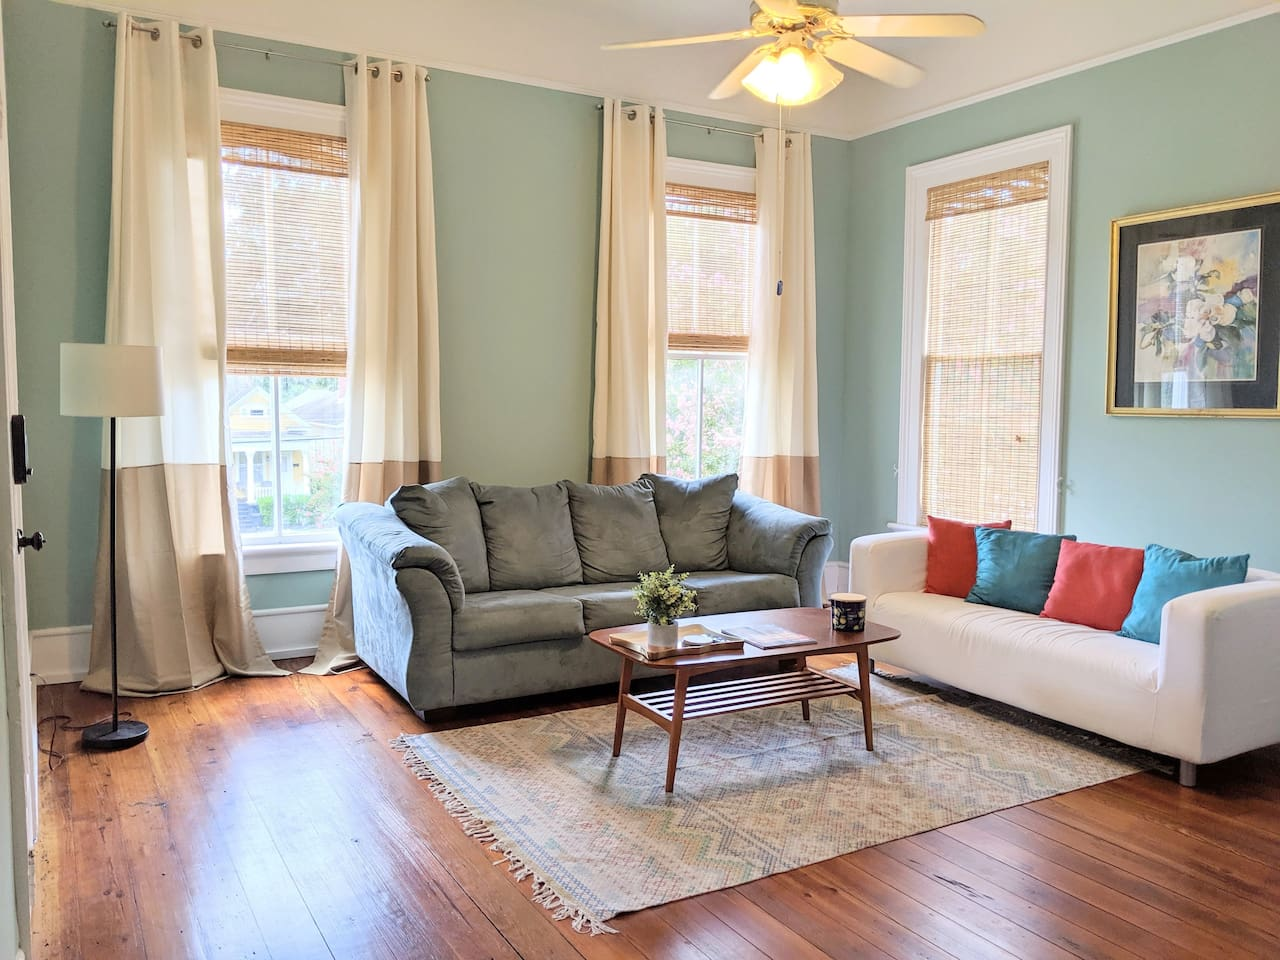 Living Room - the blue couch is the sleeper sofa